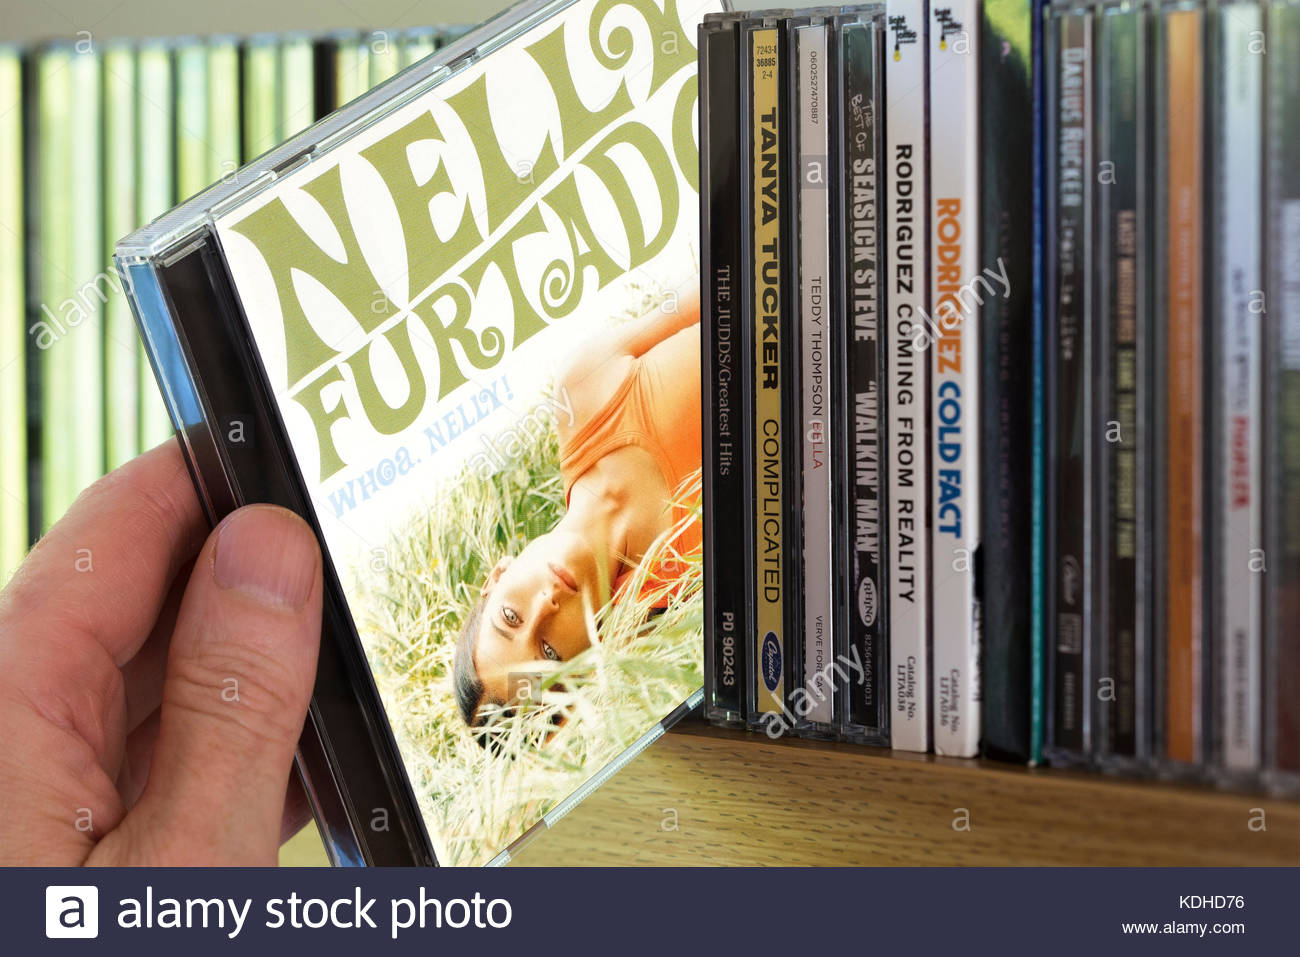 Whoa Nelly , Nelly Furtado CD being chosen from a shelf of other CD's, Dorset, England Stock Photo